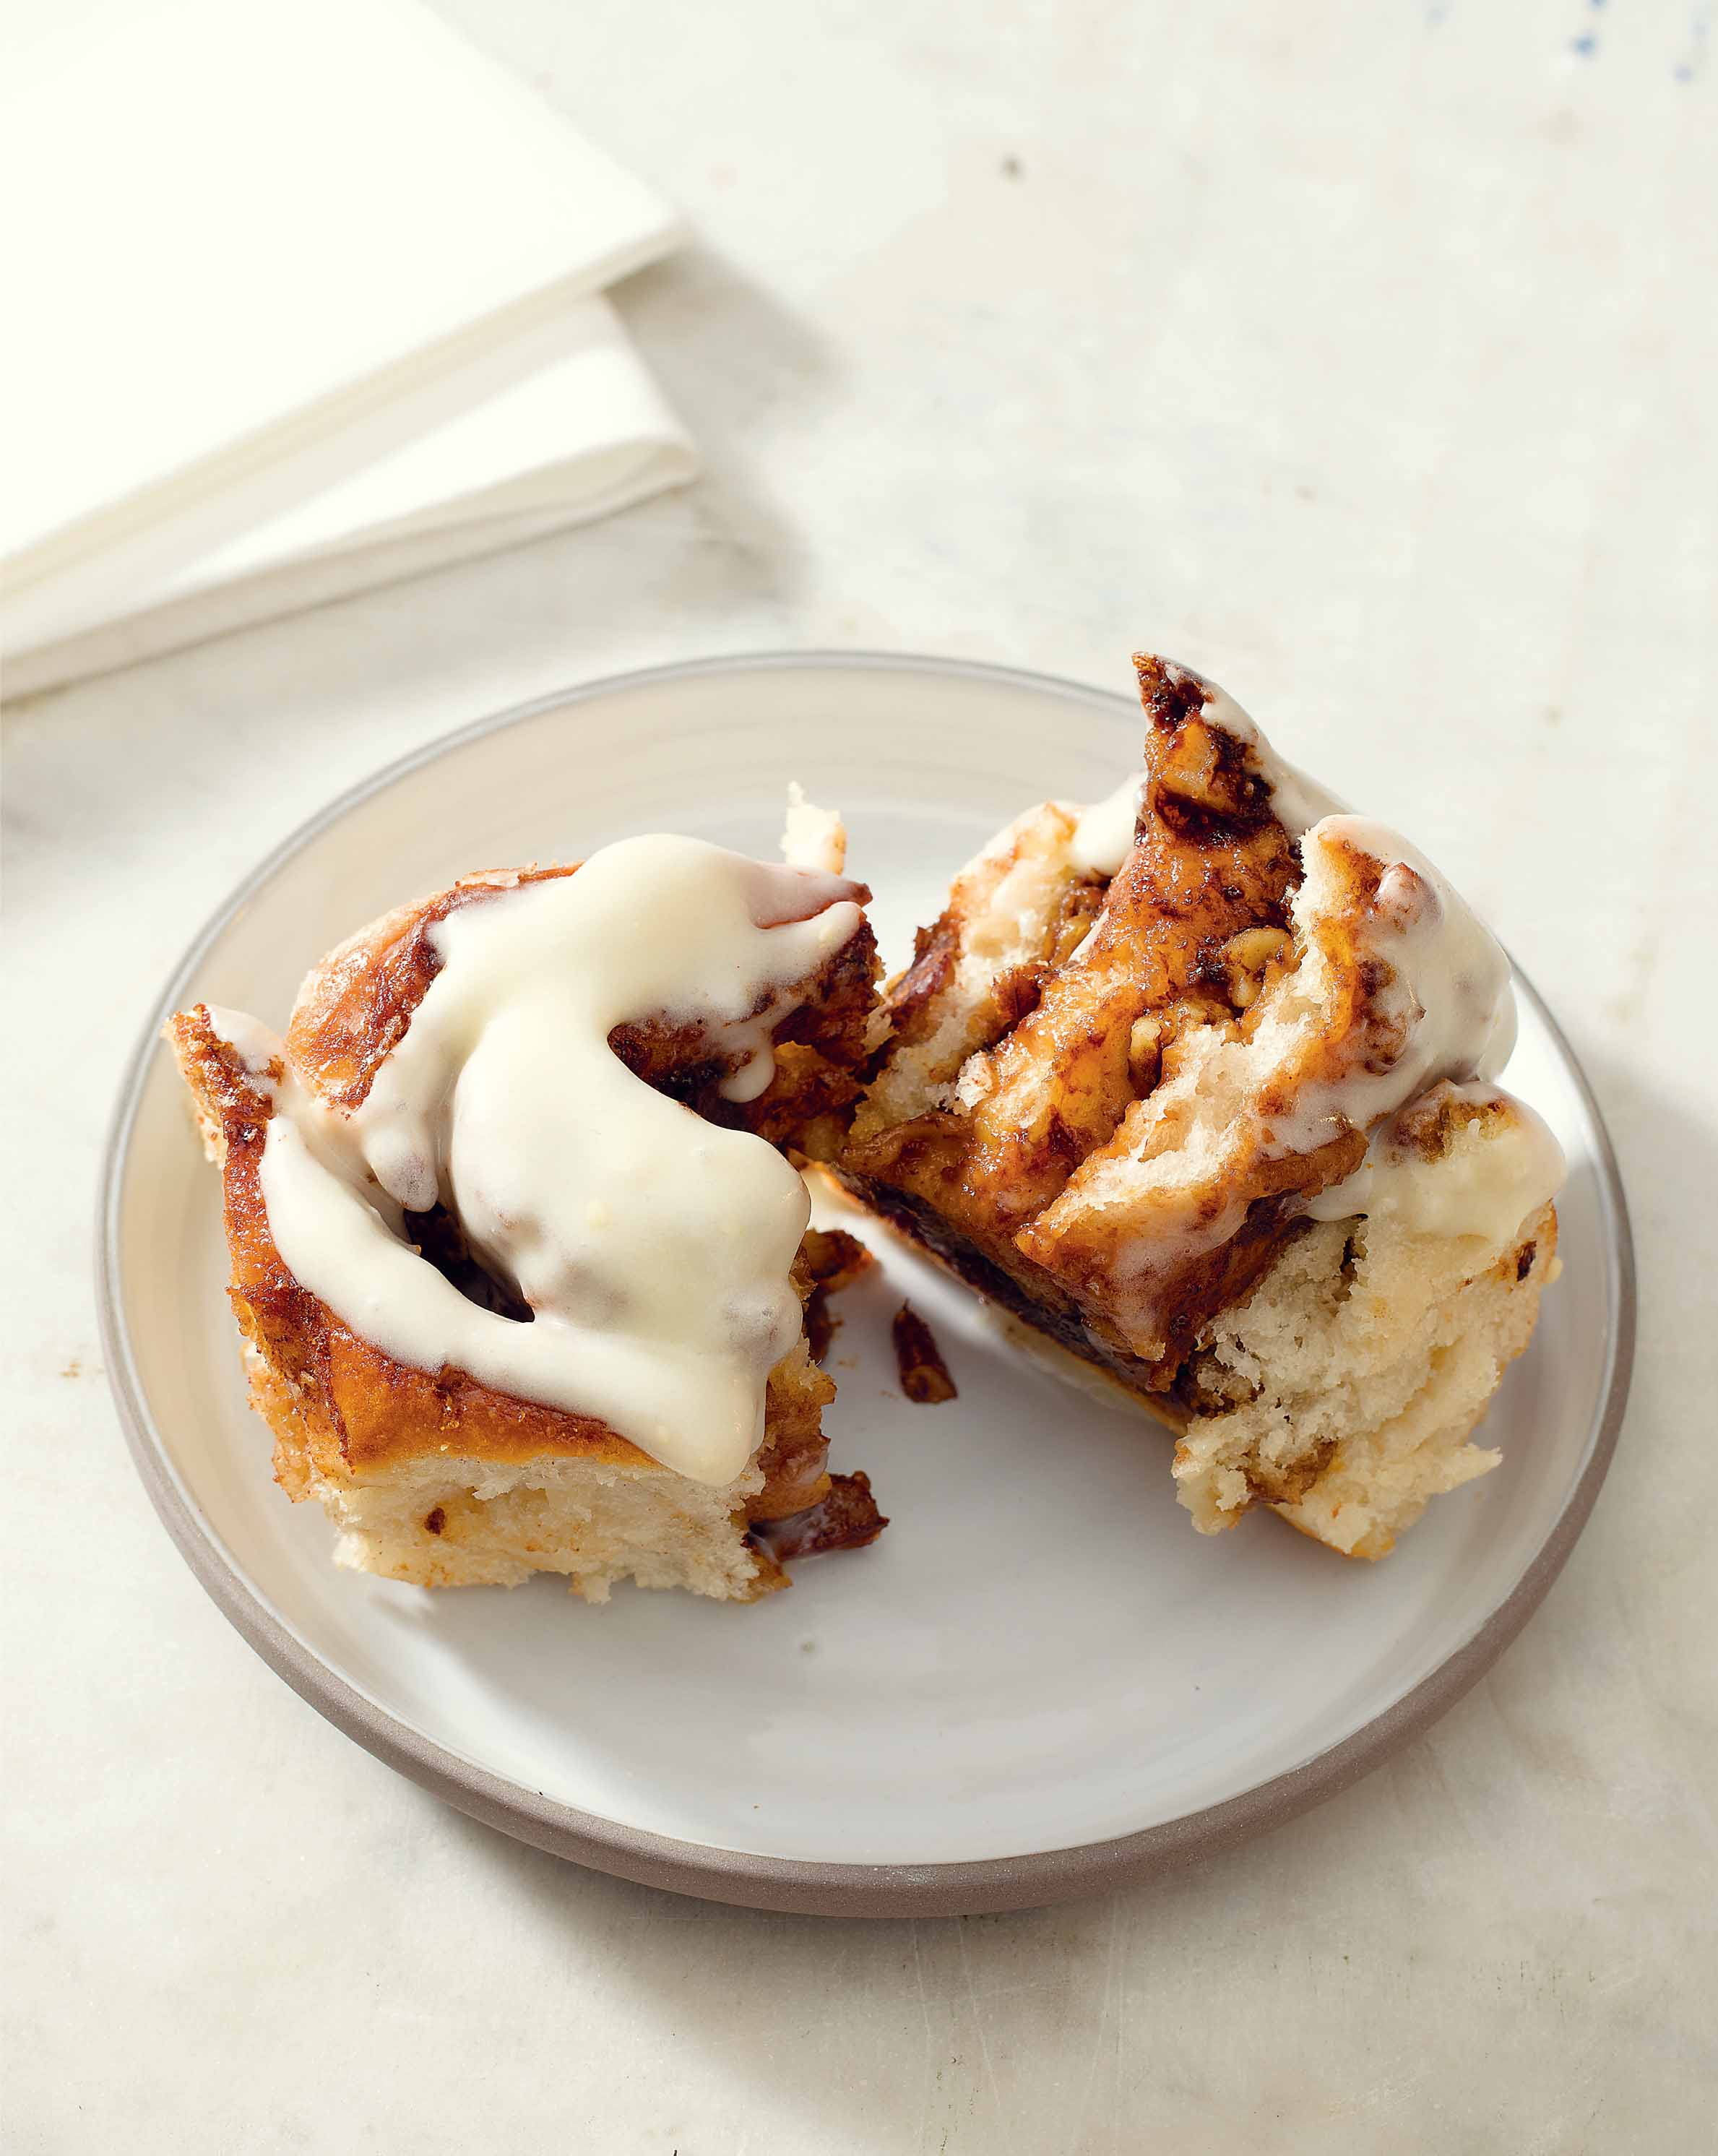 Pecan cinnamon rolls with cream cheese frosting